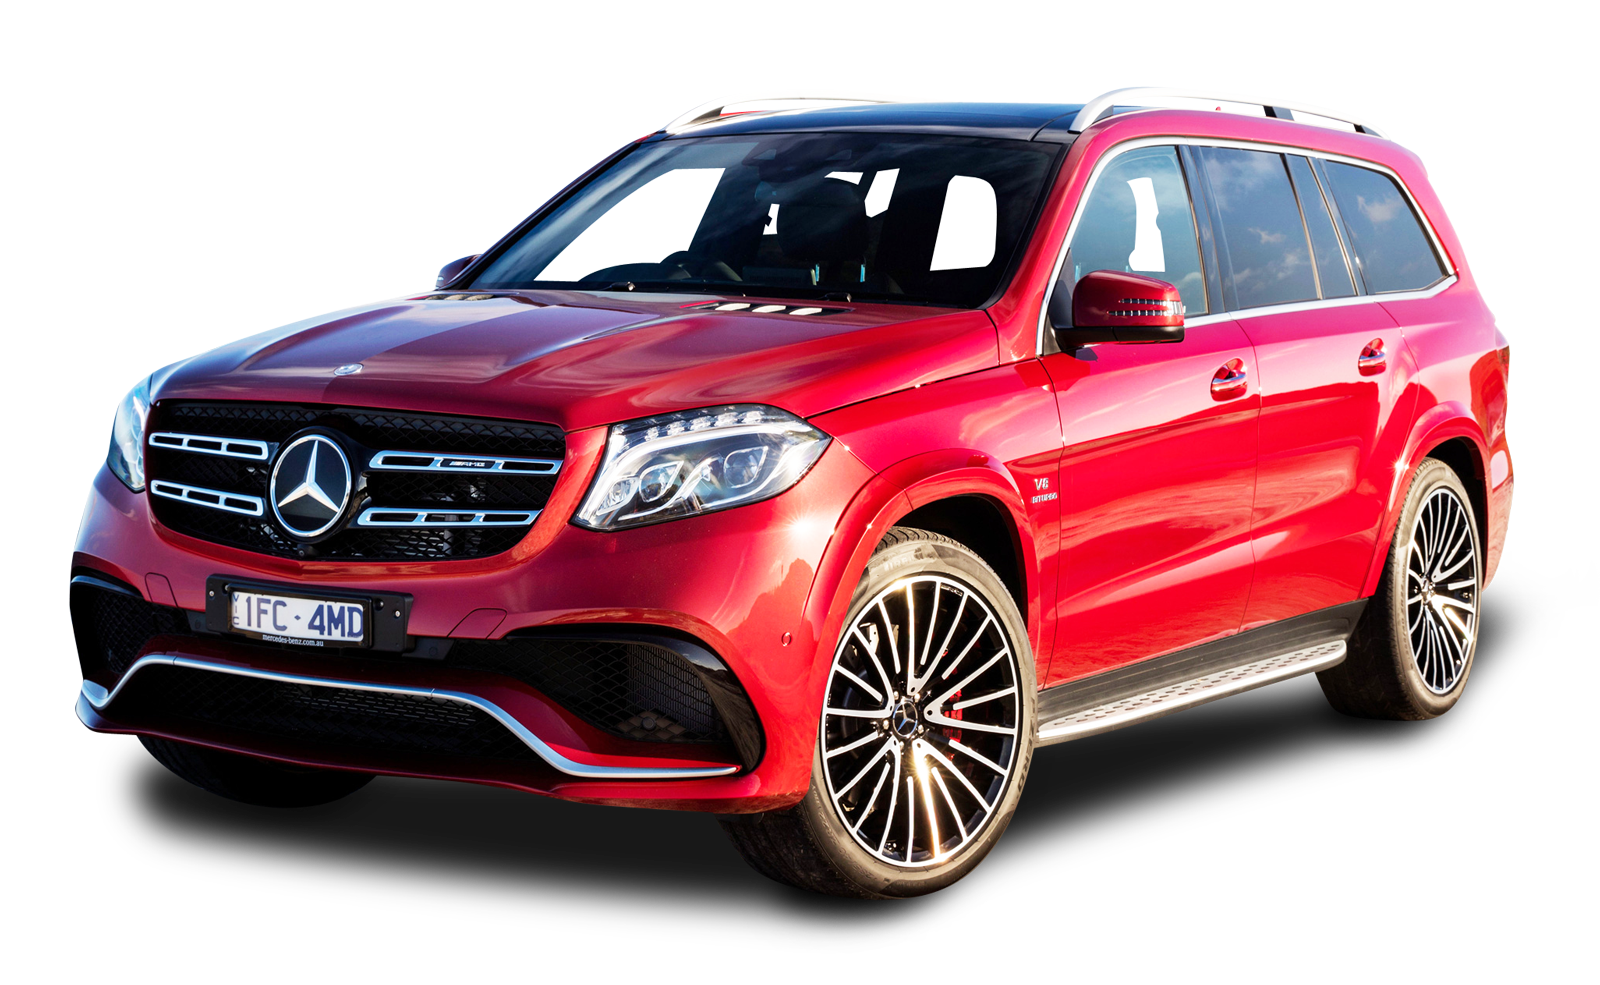 Gls logo clipart banner library Mercedes Benz GLS Class Red Car PNG Image - PurePNG | Free ... banner library